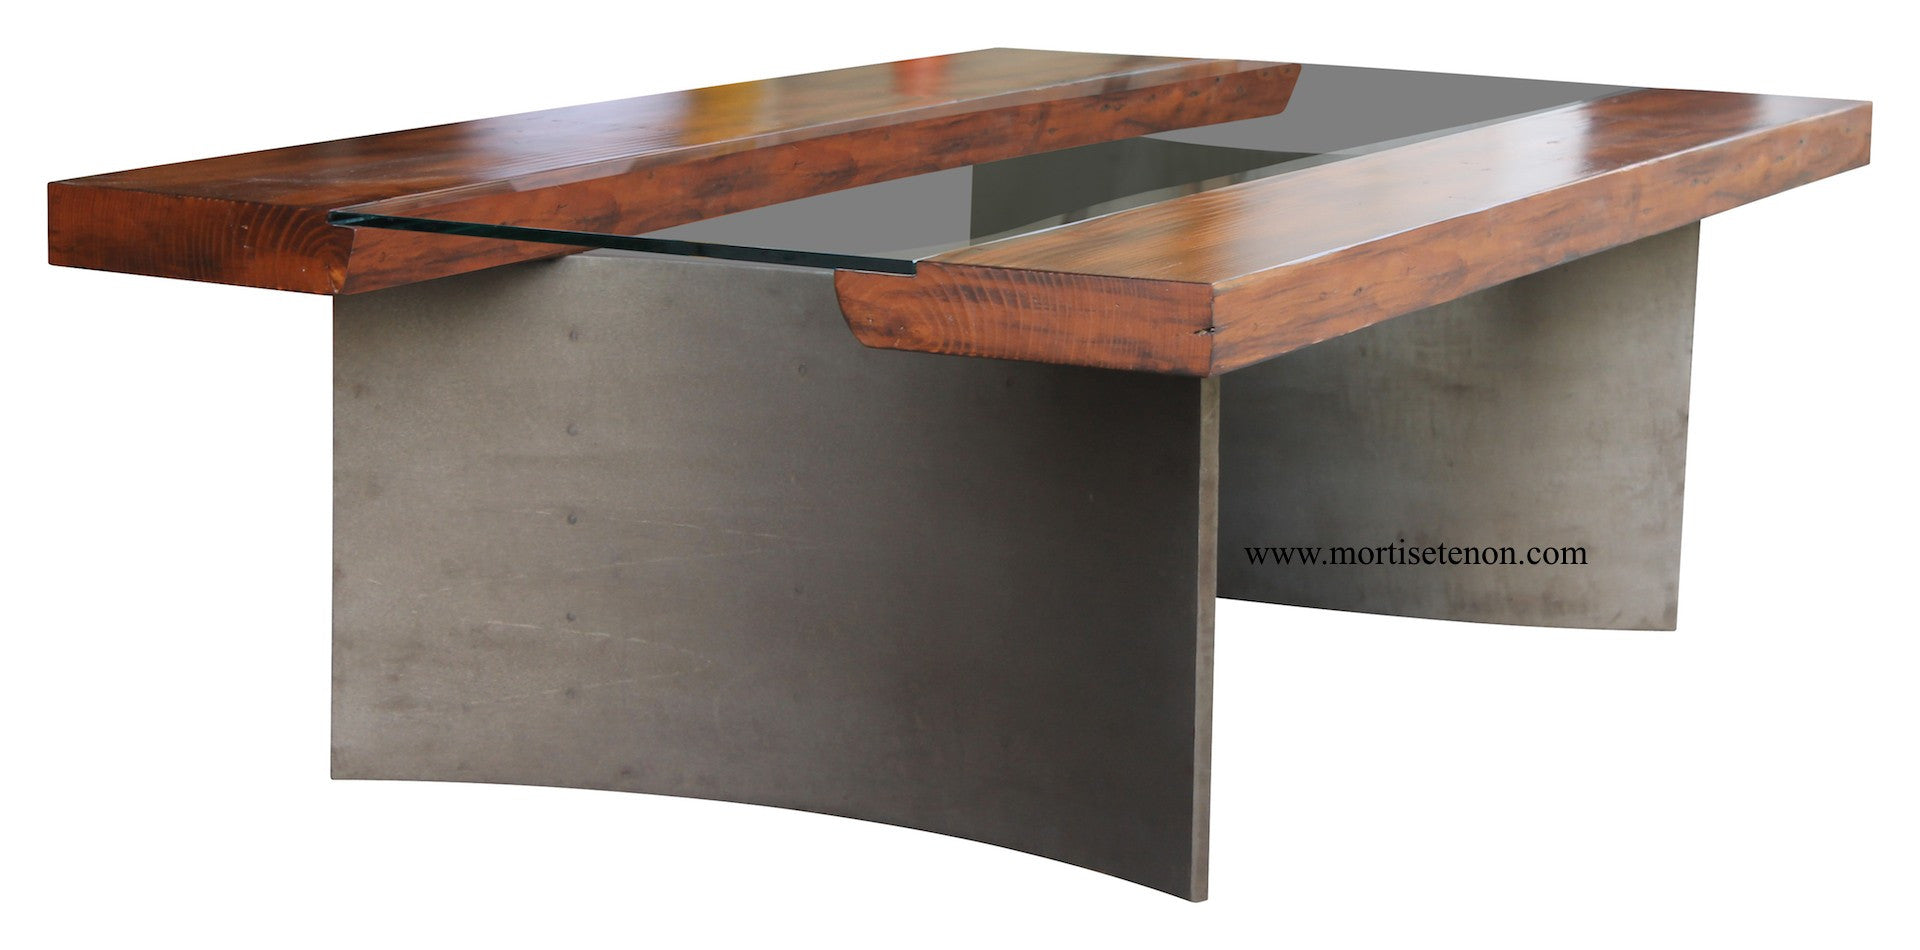 ... Reclaimed Wood Free Edge Coffee Table With Industrial Metal Legs ...